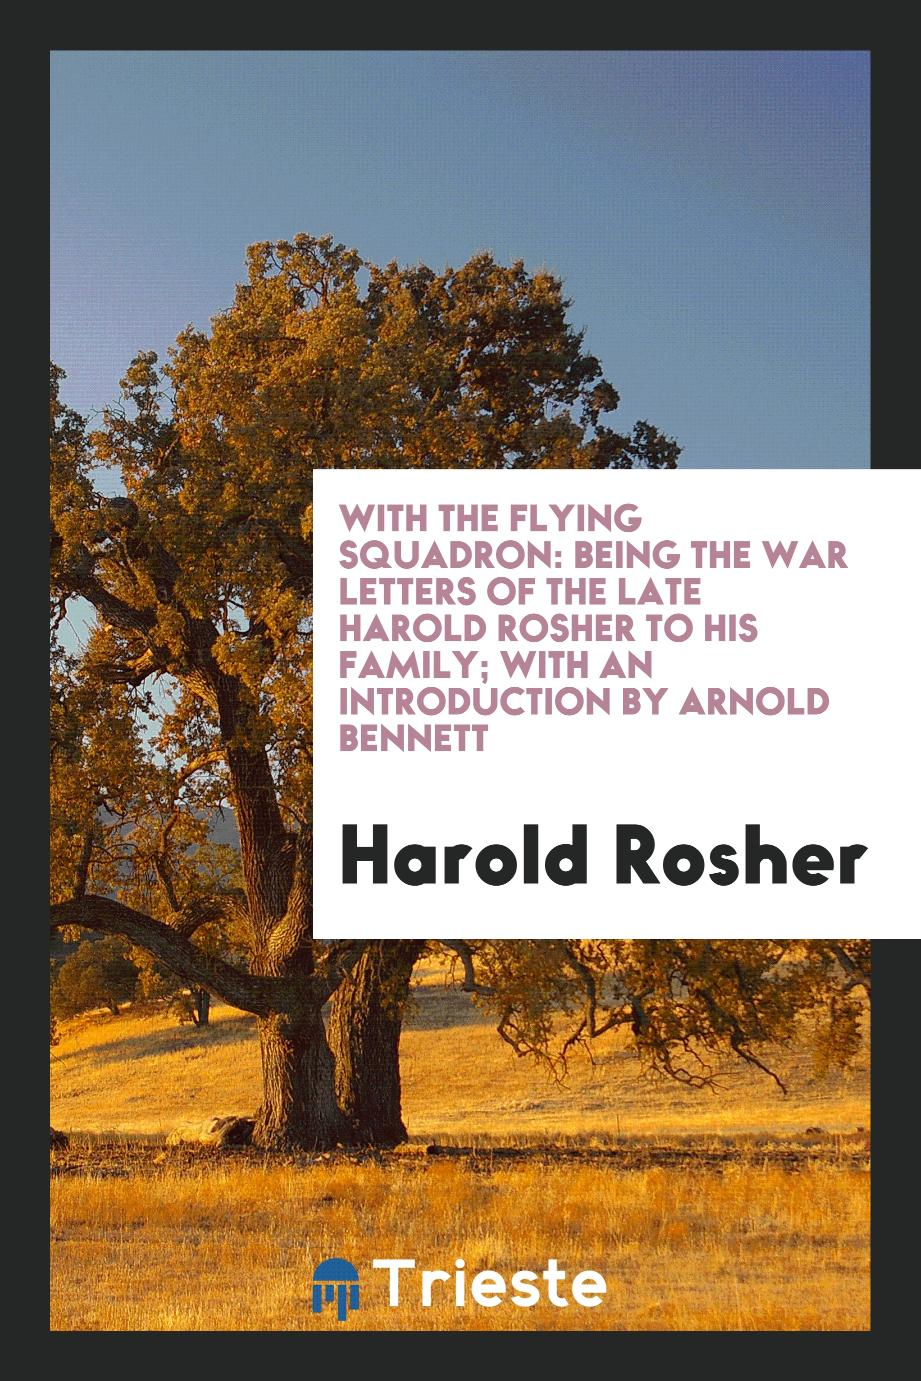 With the Flying Squadron: Being the War Letters of the Late Harold Rosher to His Family; With an Introduction by Arnold Bennett